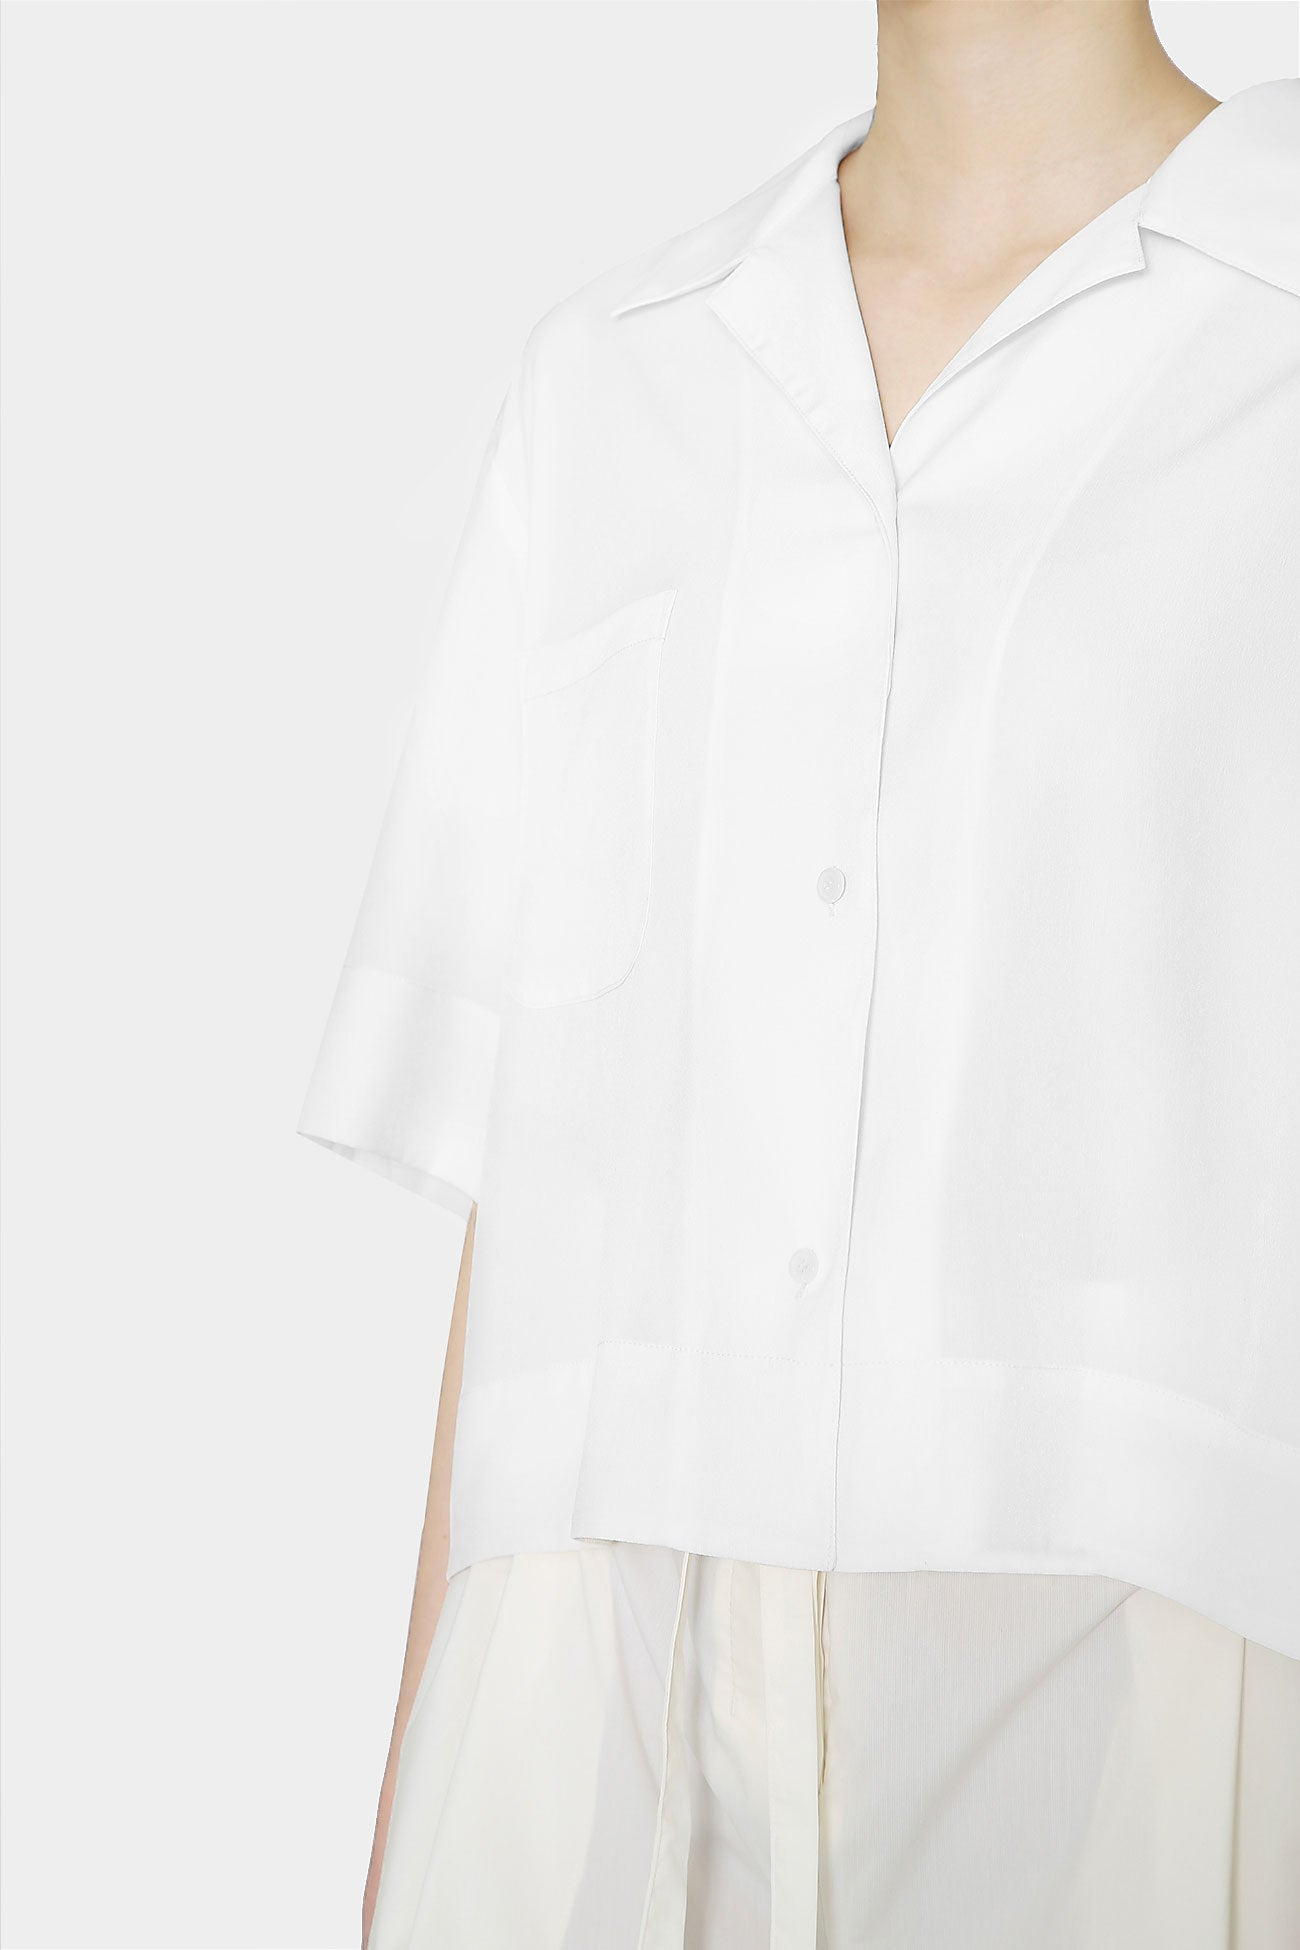 ANTIQUE WHITE CLAIRE DAY SHIRT